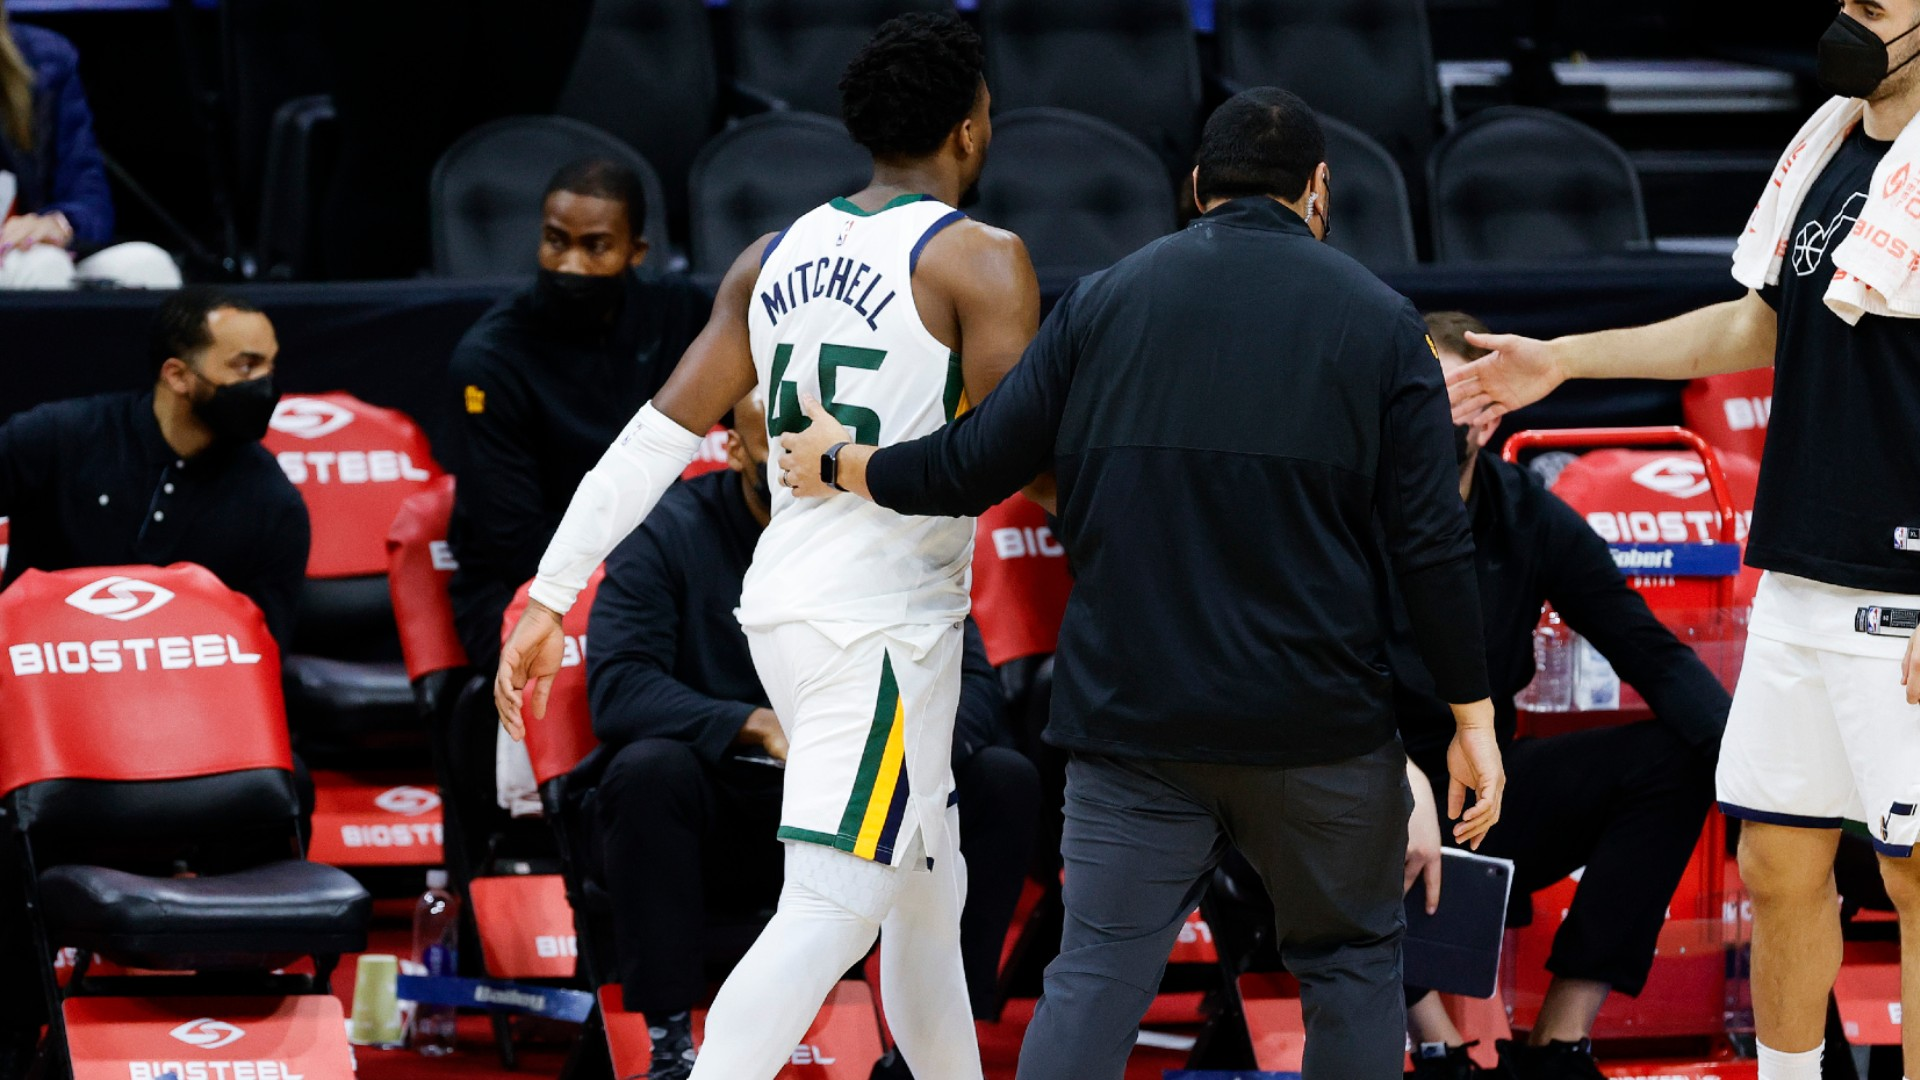 'It's getting f****** ridiculous' – Mitchell unloads after ejection in Jazz's OT loss